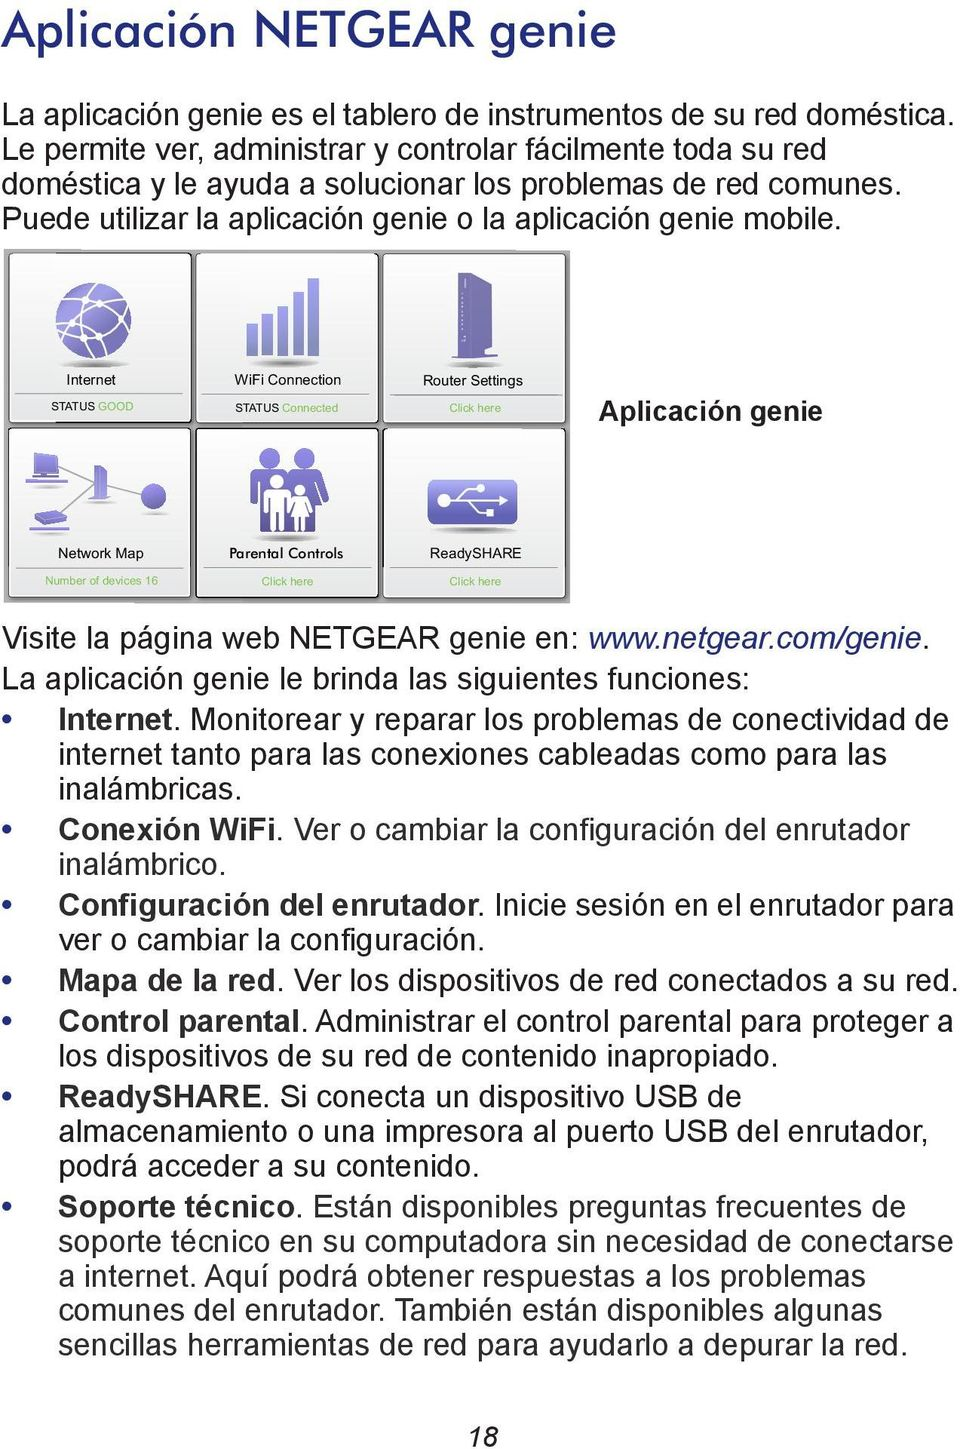 Internet STATUS GOOD WiFi Connection STATUS Connected Router Settings Click here Aplicación genie Network Map Parental Controls ReadySHARE Number of devices 16 Click here Click here Visite la página